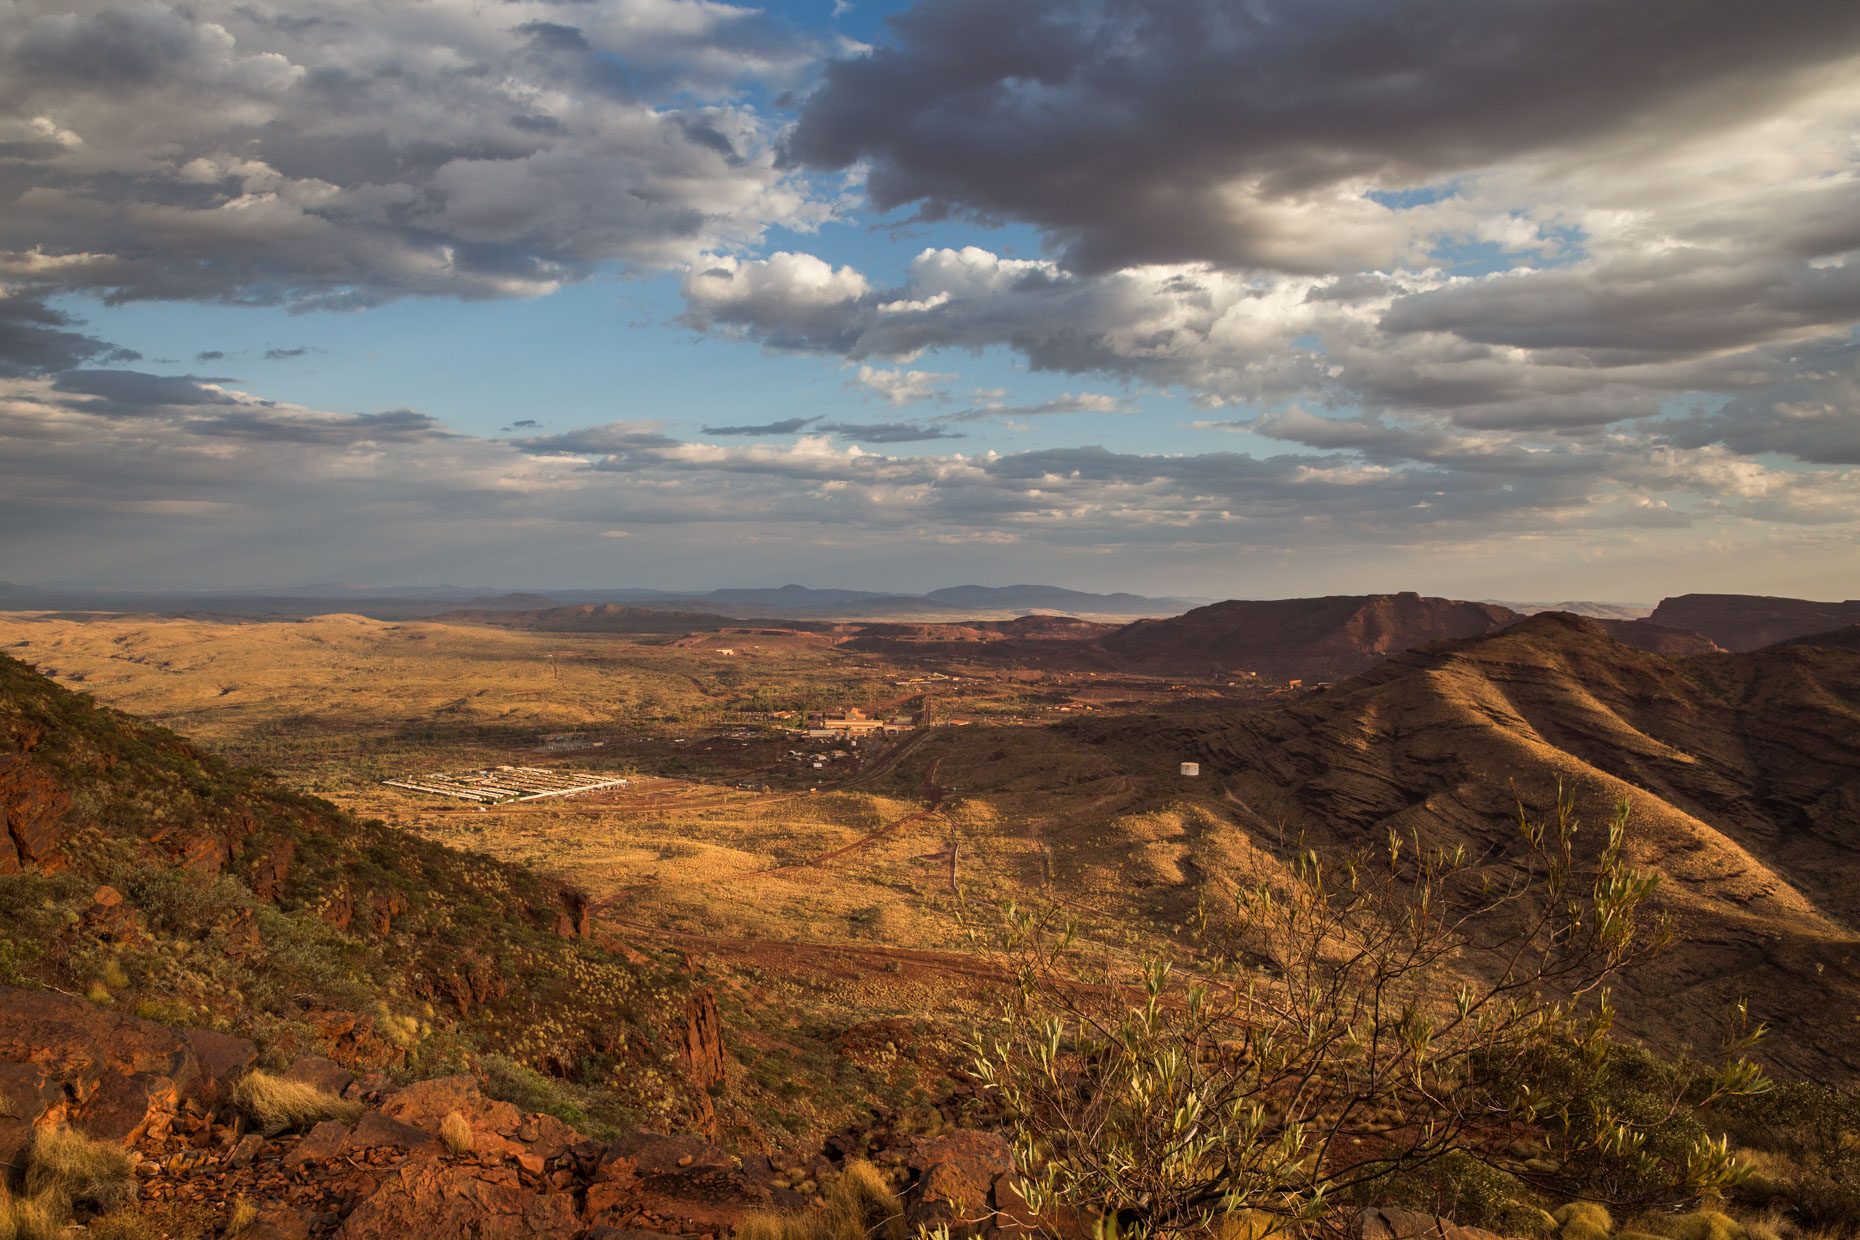 Pilbara Landscape photography | Environment | Brisbane Photographer | Mark Lehn